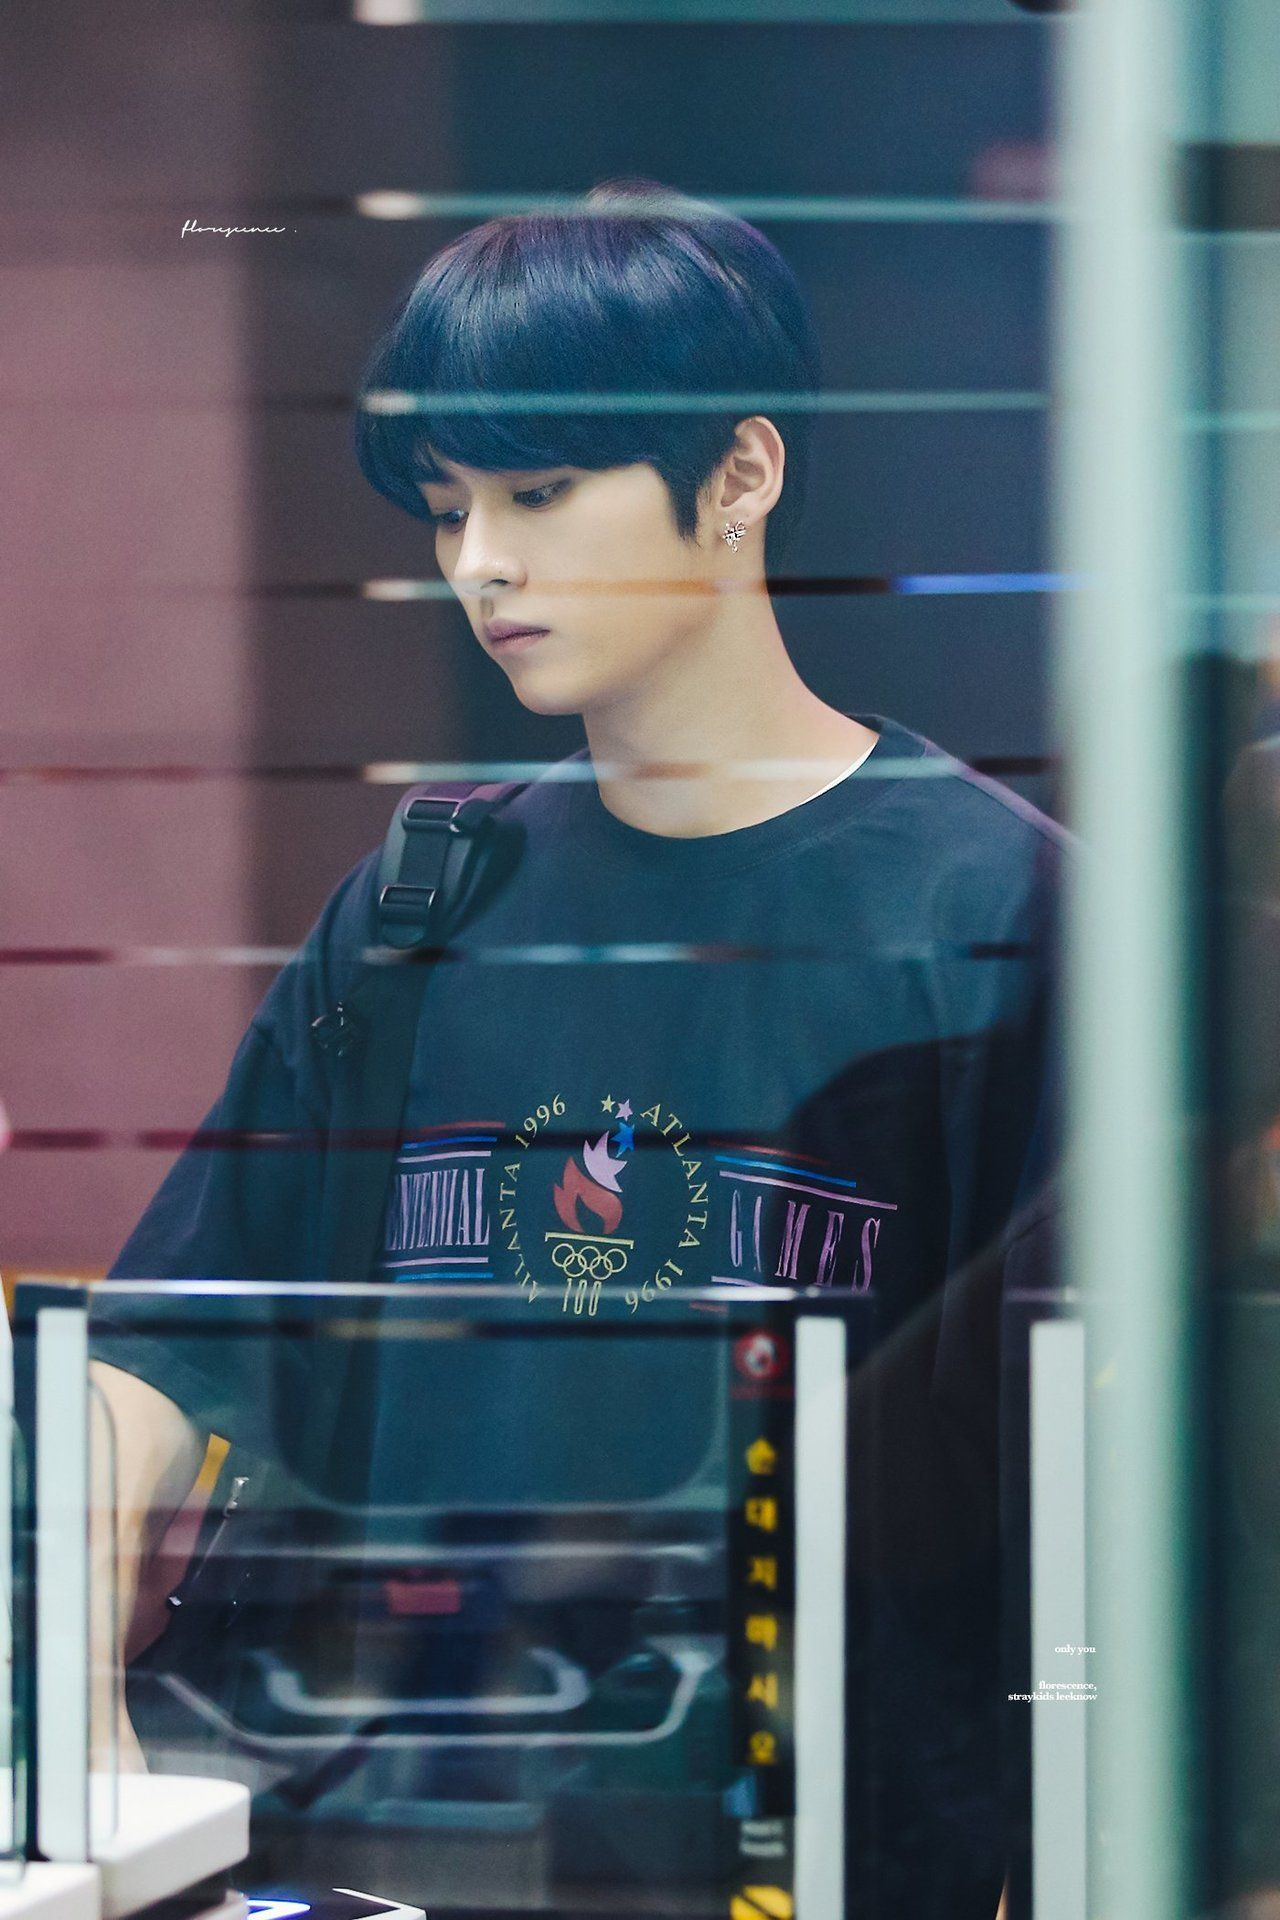 Stray kids Lee Know (Minho) © florescence [1, 2] | please do NOT edit or remove logo!